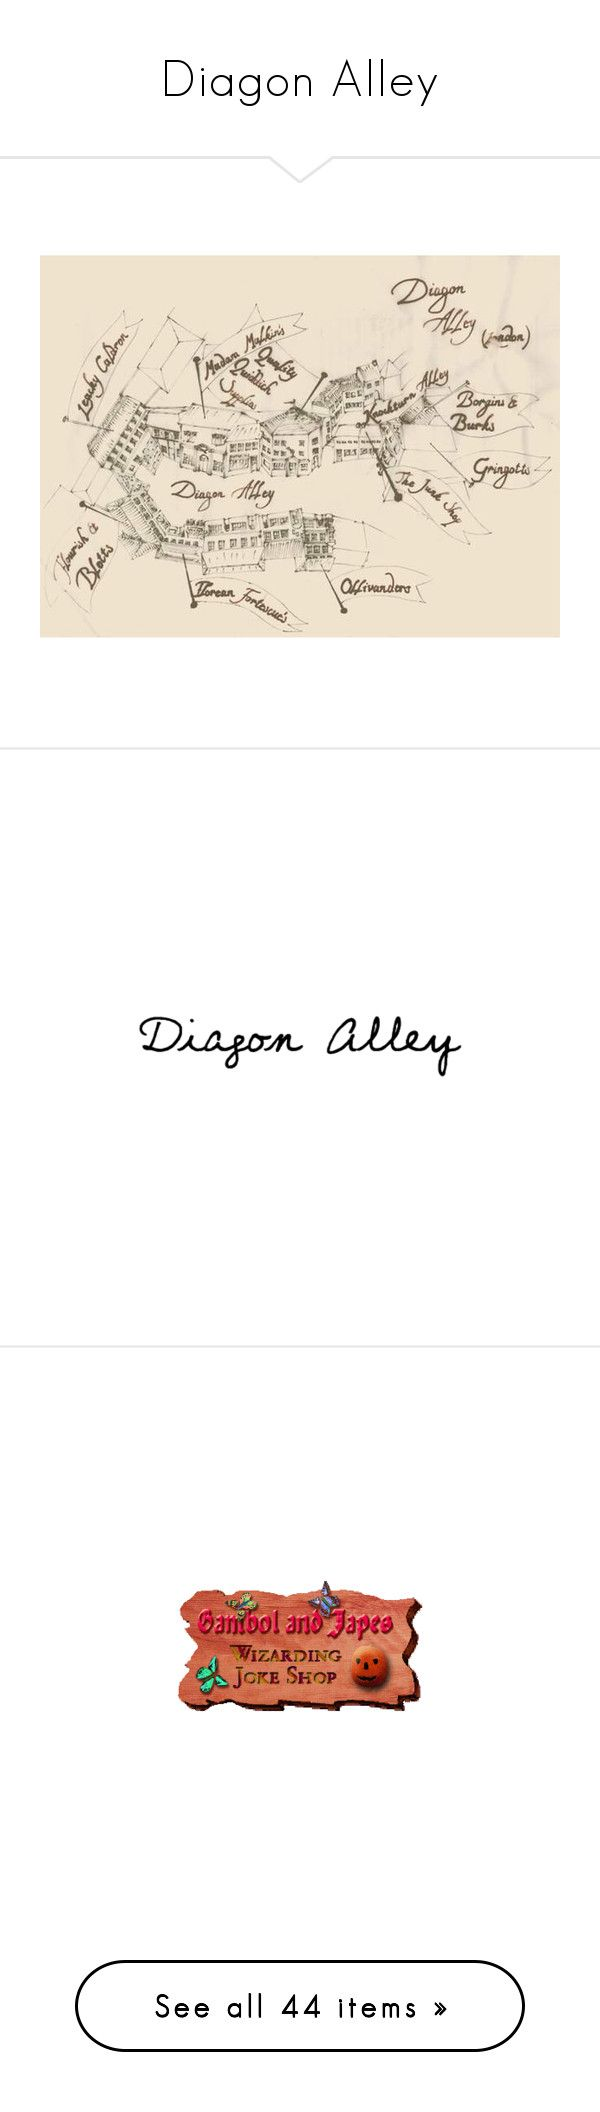 """""""Diagon Alley"""" by sunrise21 ❤ liked on Polyvore featuring harry potter, backgrounds, hogwarts, quotes, words, diagon alley, filler, magic, hp and pictures"""